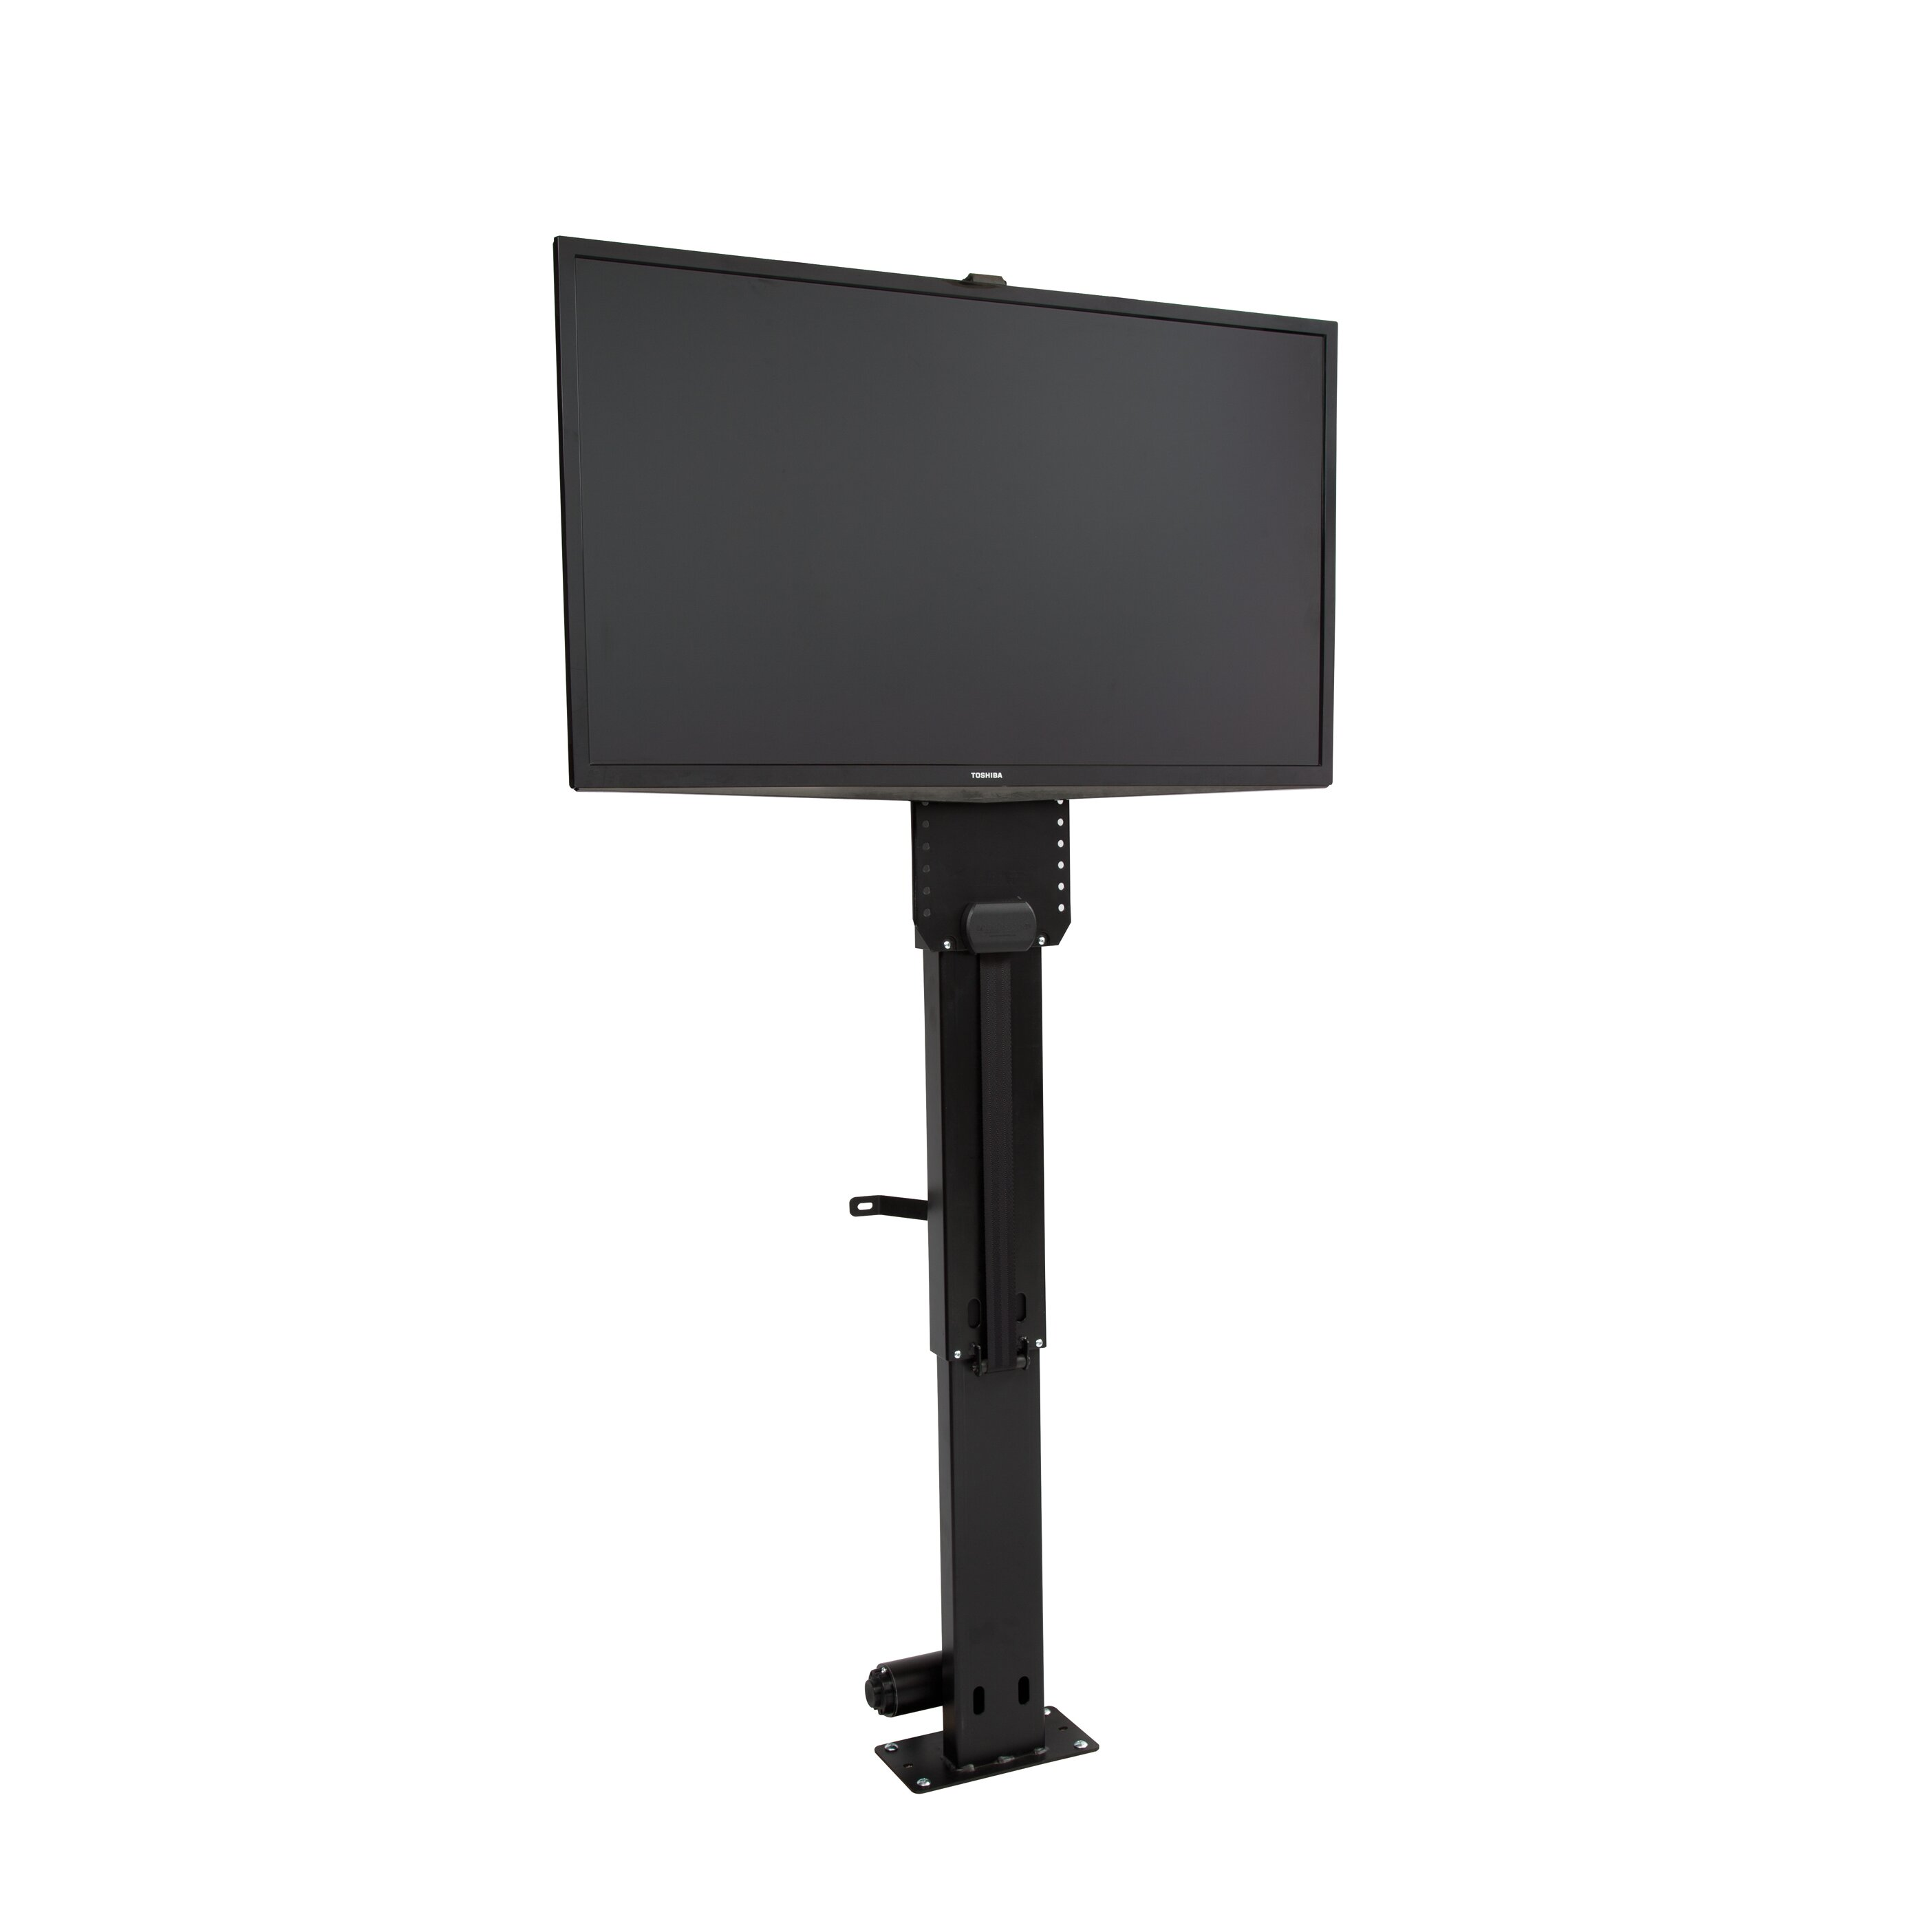 Touchstone whisper lift ii pro motorized floor stand mount for Motorized flat screen tv lift